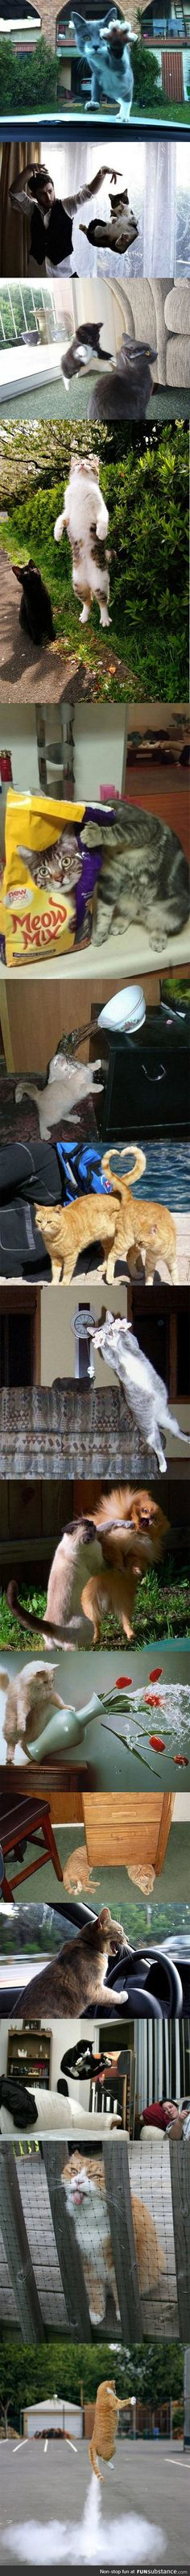 Cat photos taken at the right moment